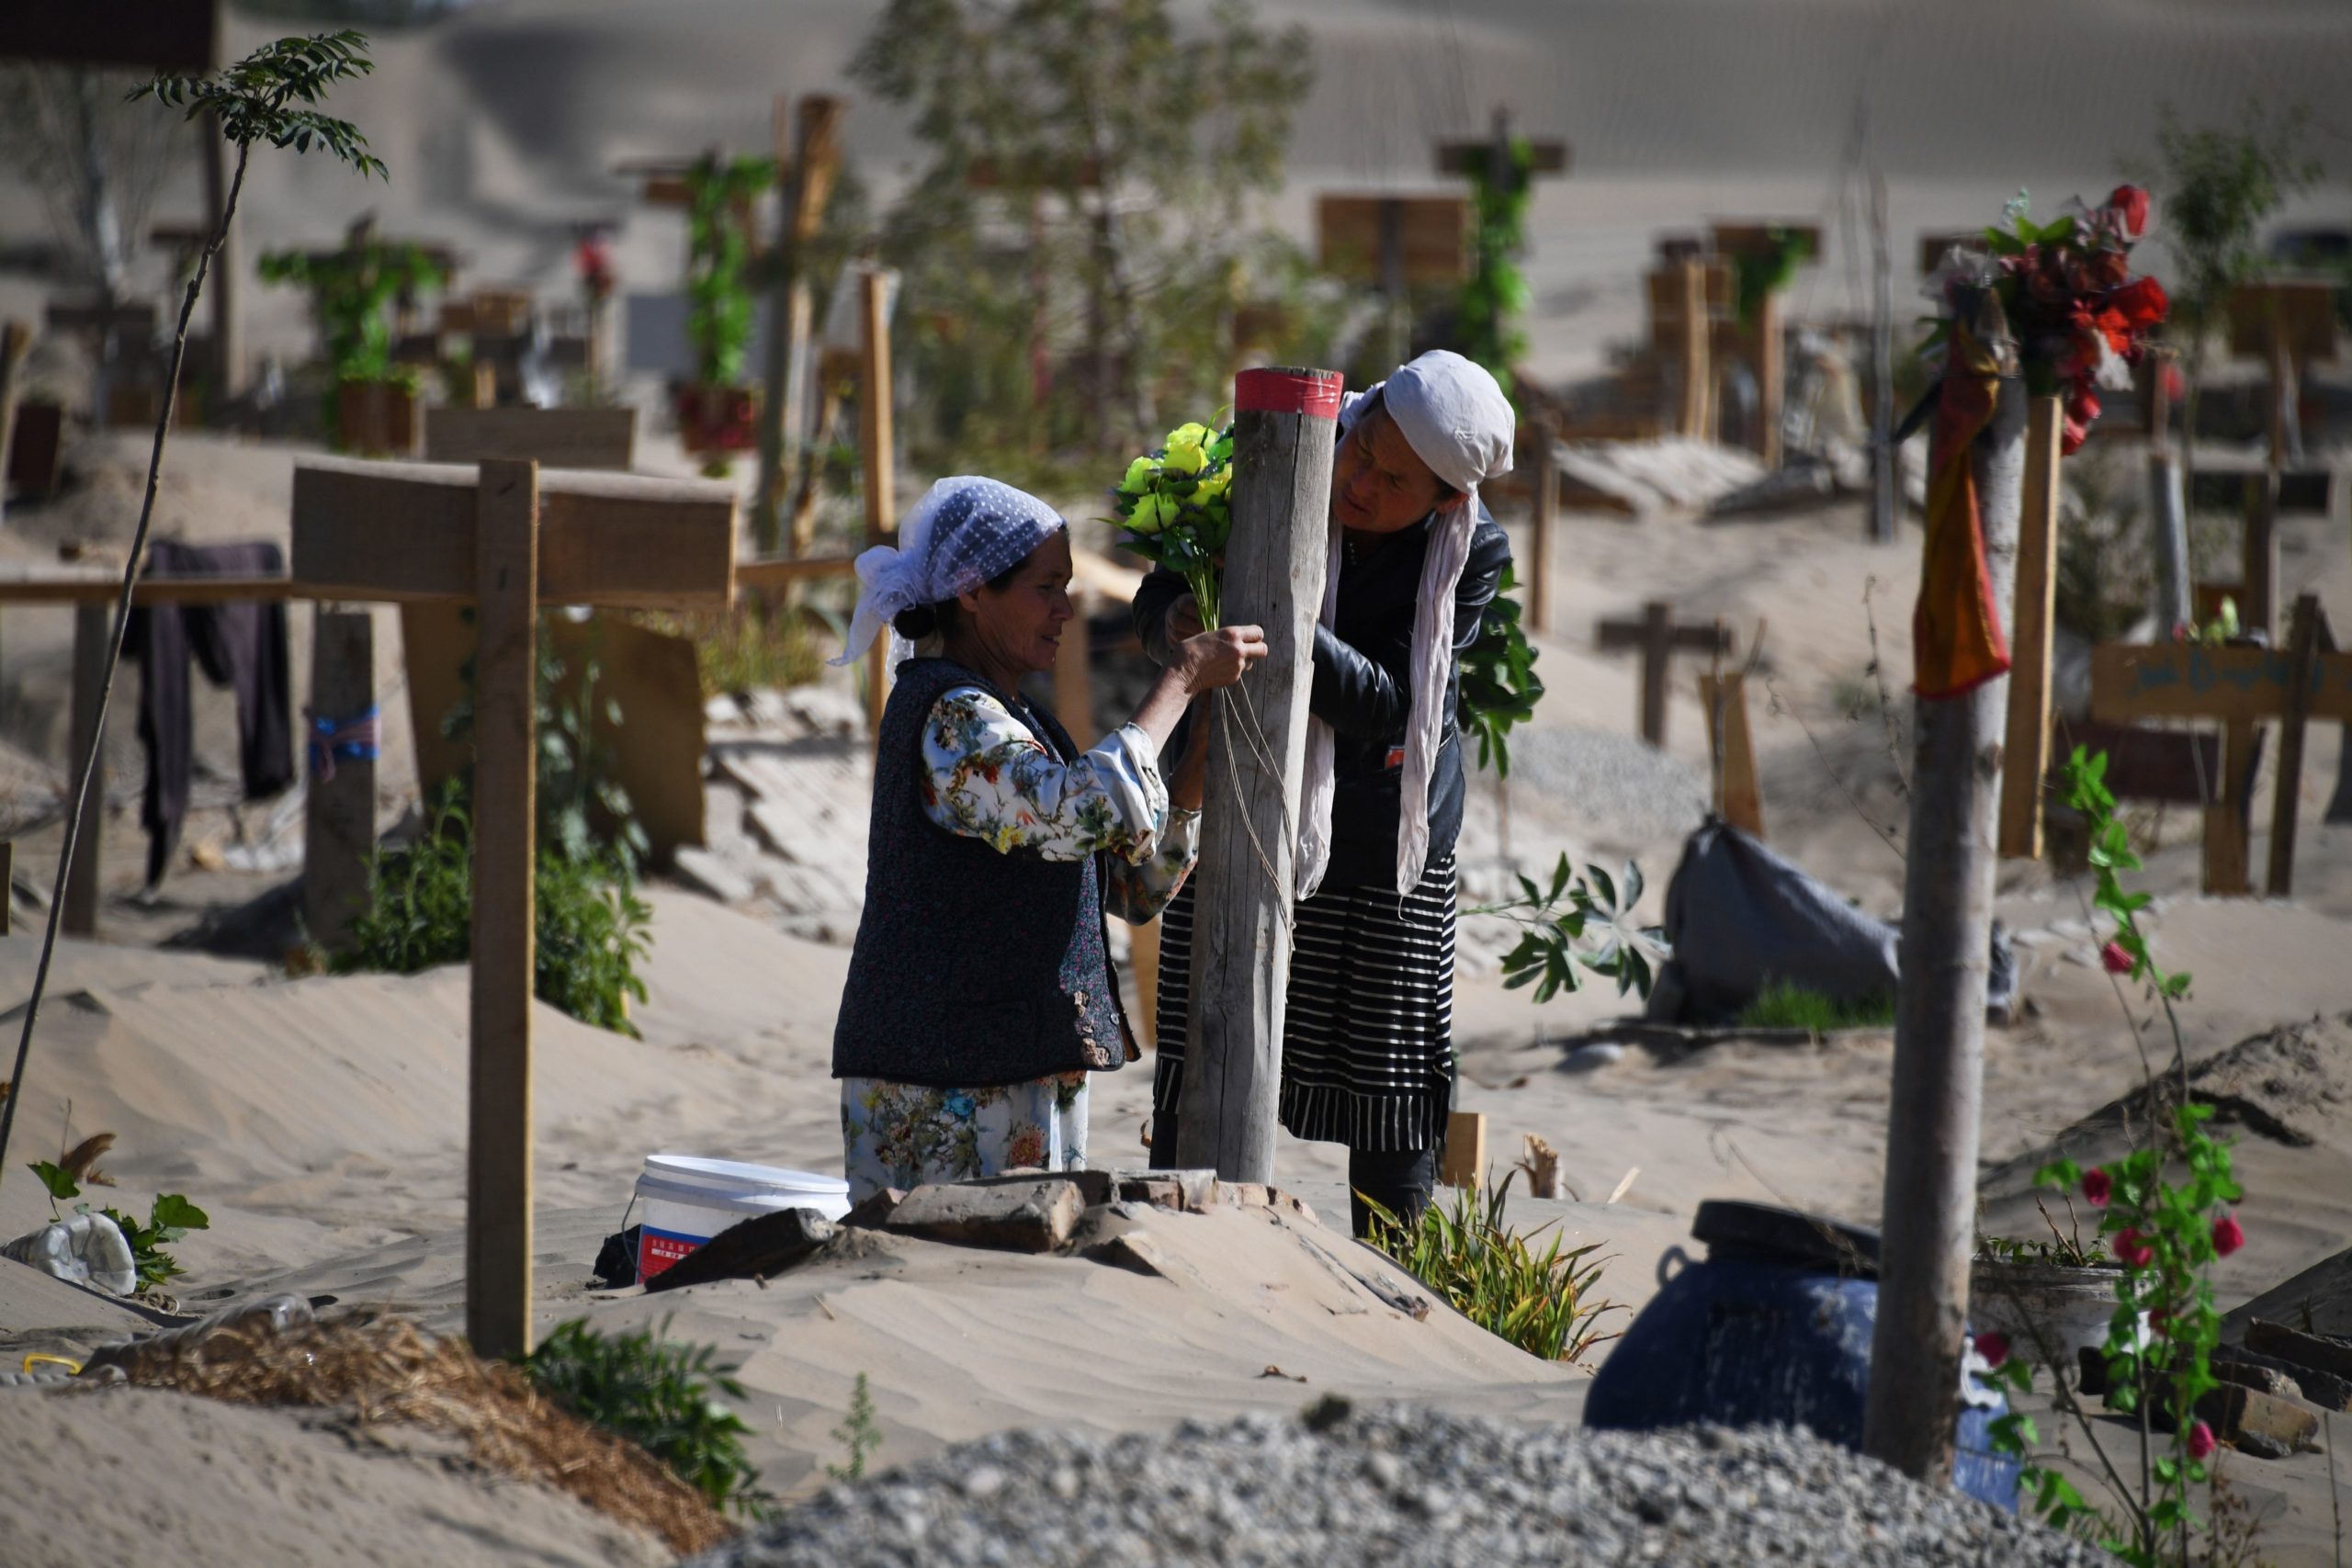 """TOPSHOT - This photo taken on May 31, 2019 shows two women decorating a grave in a Uighur graveyard on the outskirts of Hotan in China's northwest Xinjiang region. - China has enforced a massive security crackdown in Xinjiang, where more than one million ethnic Uighurs and other mostly Muslim minorities are believed to be held in a network of internment camps that Beijing describes as """"vocational education centres"""" aimed at steering people away from religious extremism. (Photo by Greg Baker / AFP) (Photo credit should read GREG BAKER/AFP via Getty Images)"""